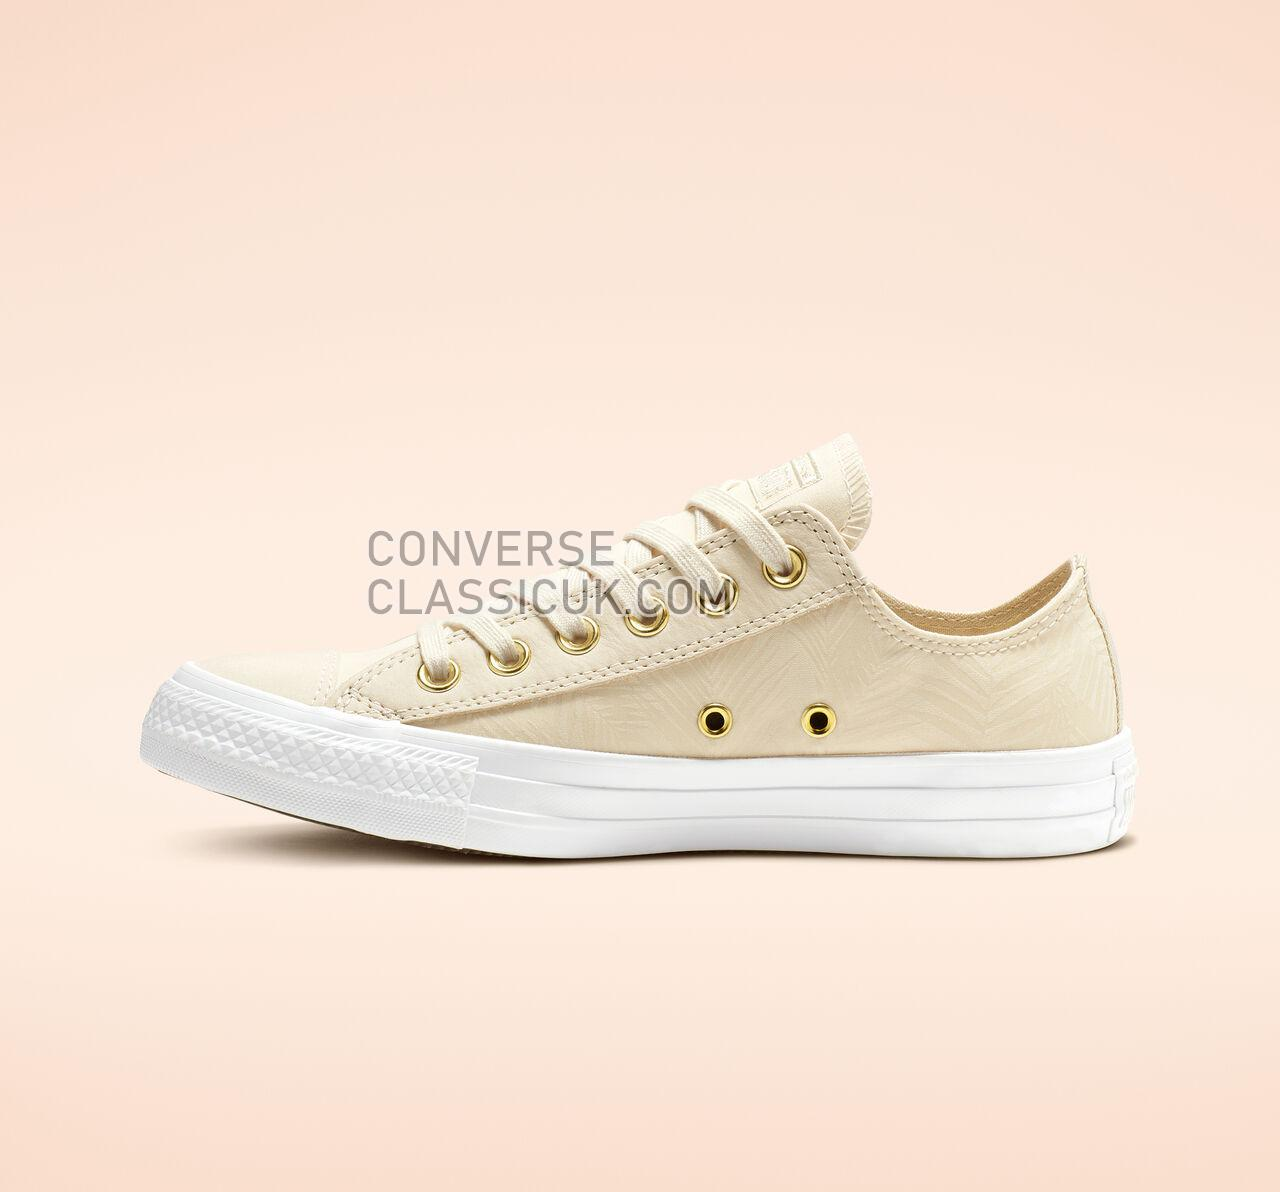 Converse Chuck Taylor All Star Summer Palms Low Top Womens 564113F Natural Ivory/Antique Brass Shoes